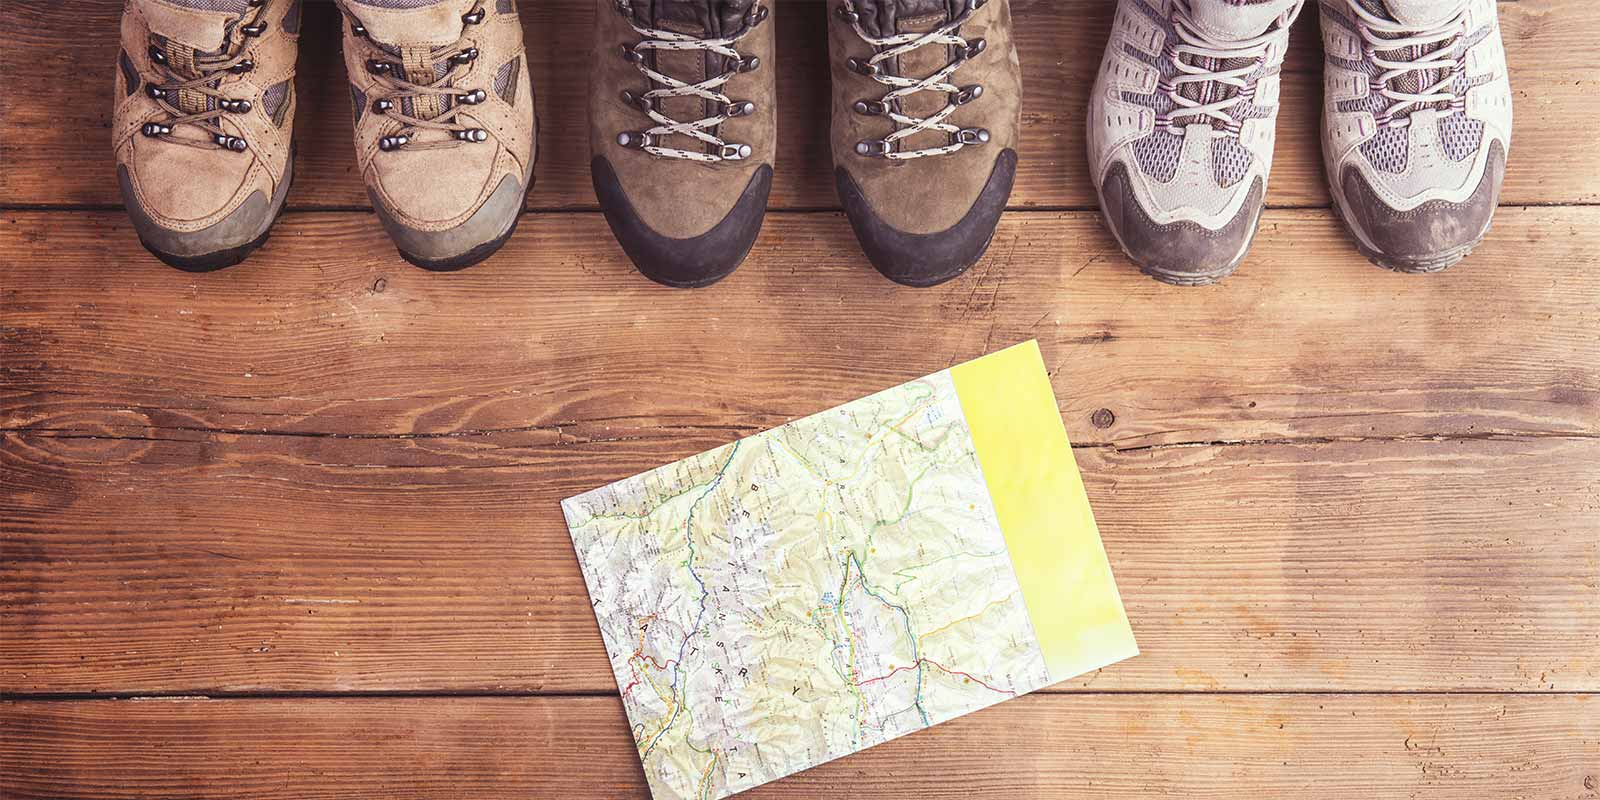 Aerial view of hiking boots and a walking map